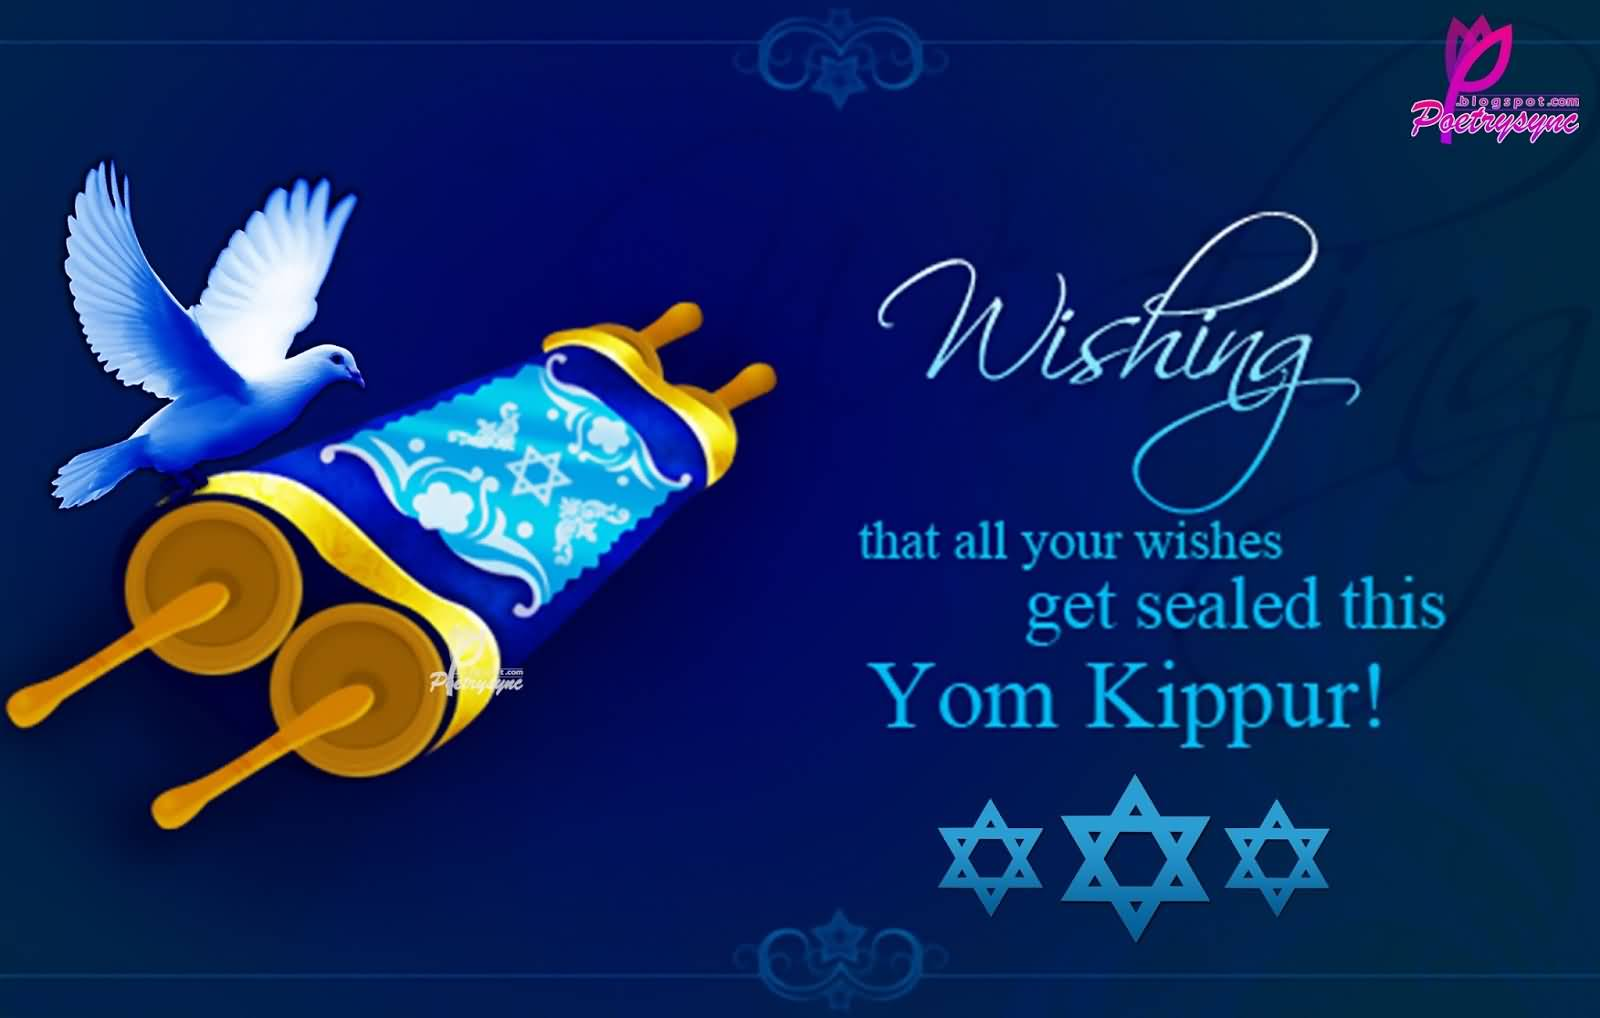 42 best pictures and photos of yom kippur wishes wishing that all your wishes get sealed this yom kippur greeting card m4hsunfo